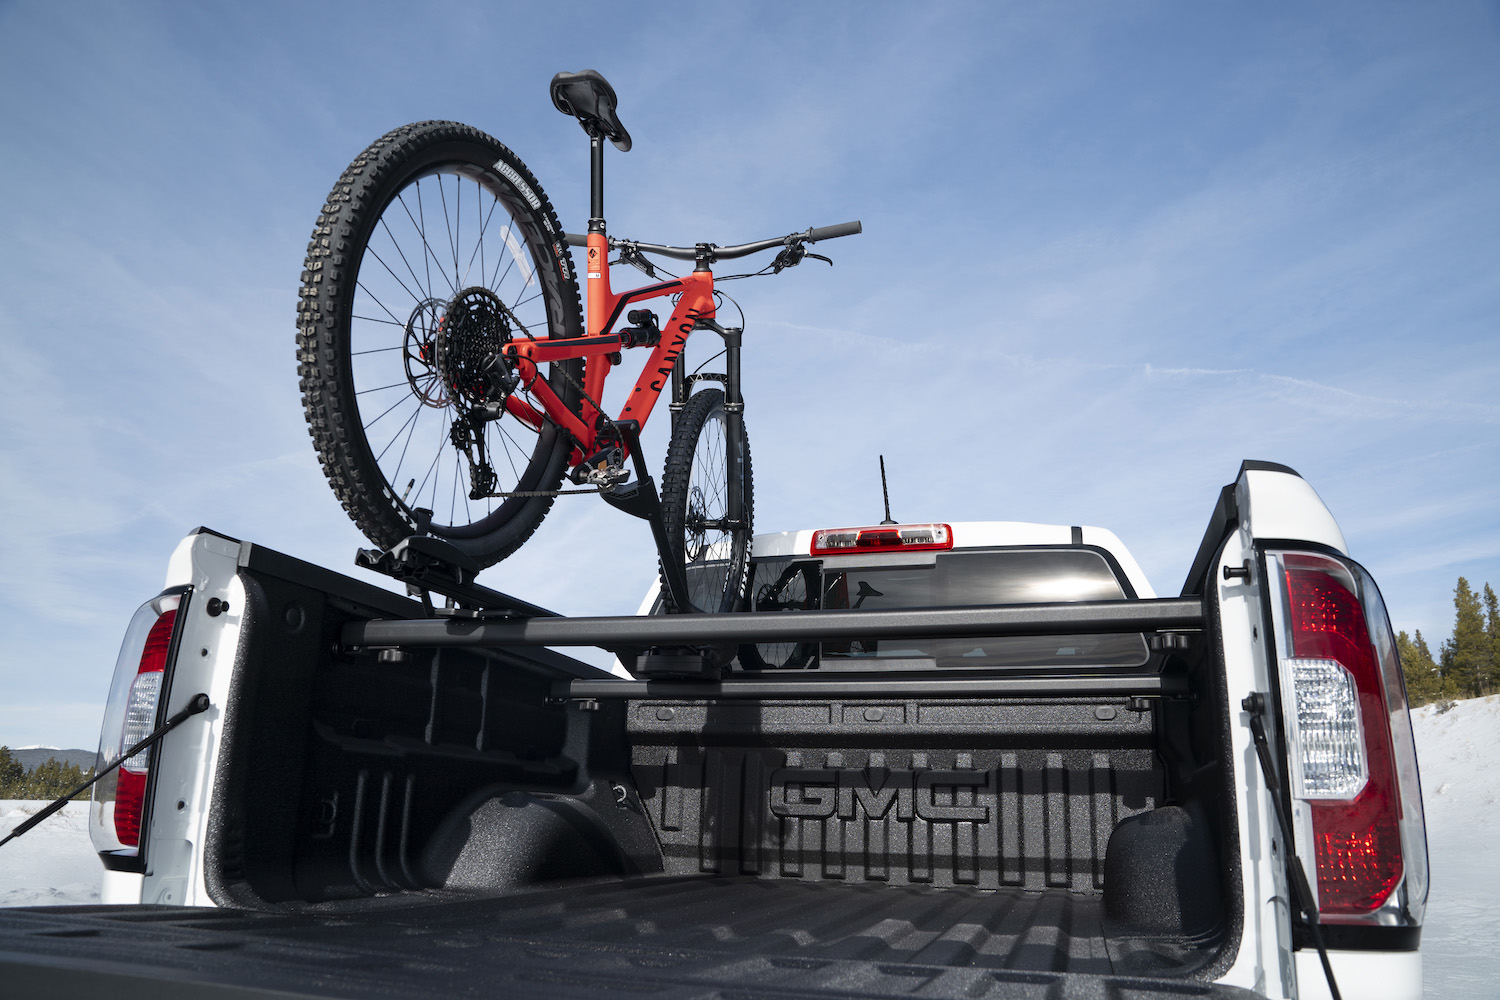 2021 rear bed and bike rack